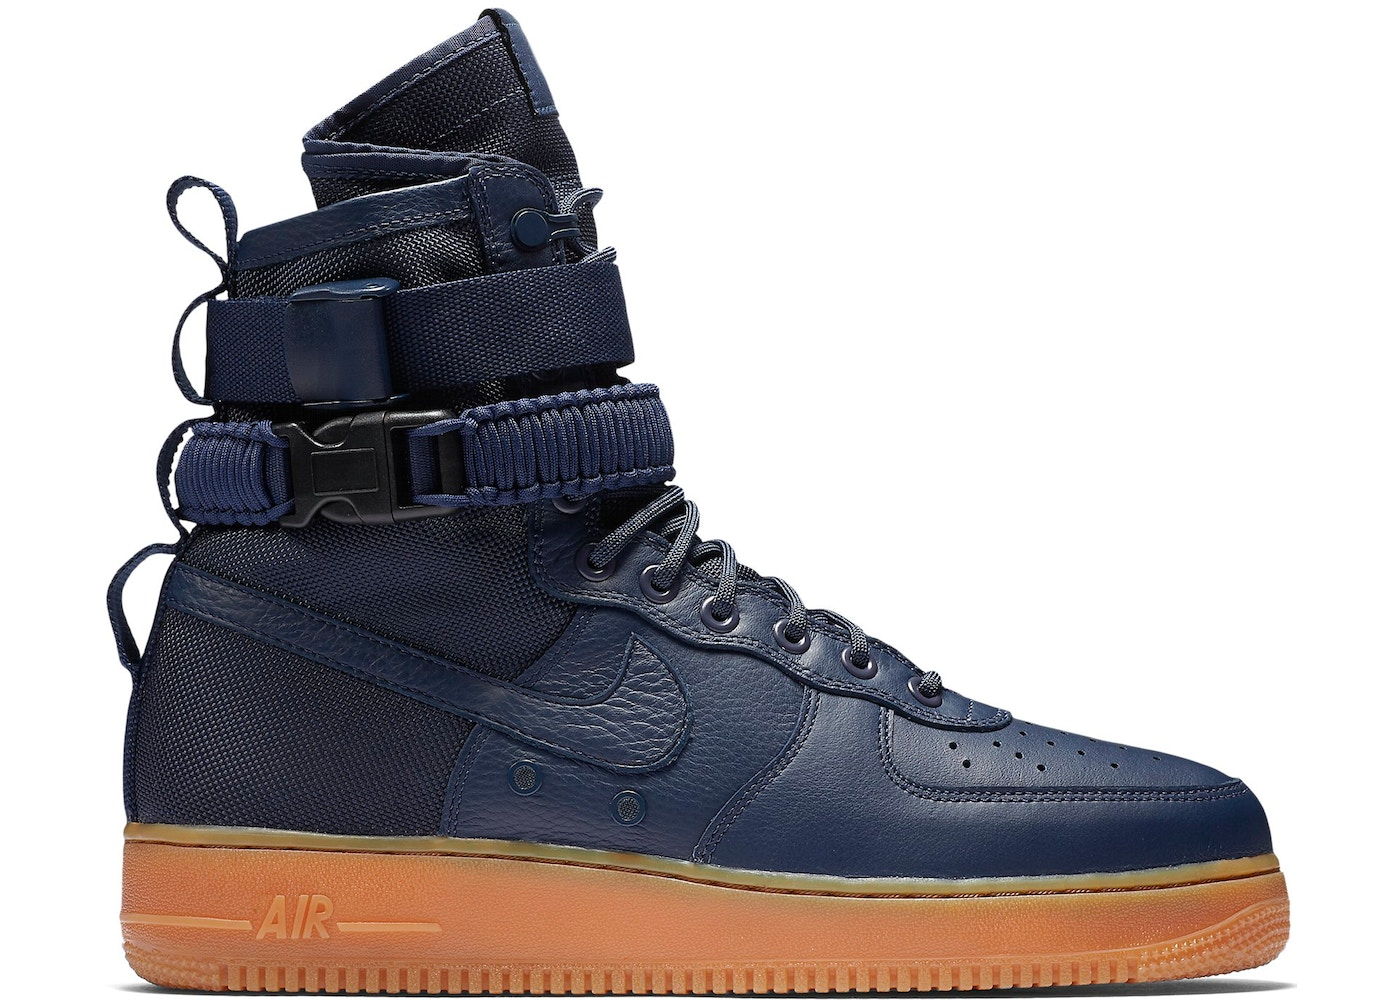 Nike Special Field Air Force 1 High Nike News